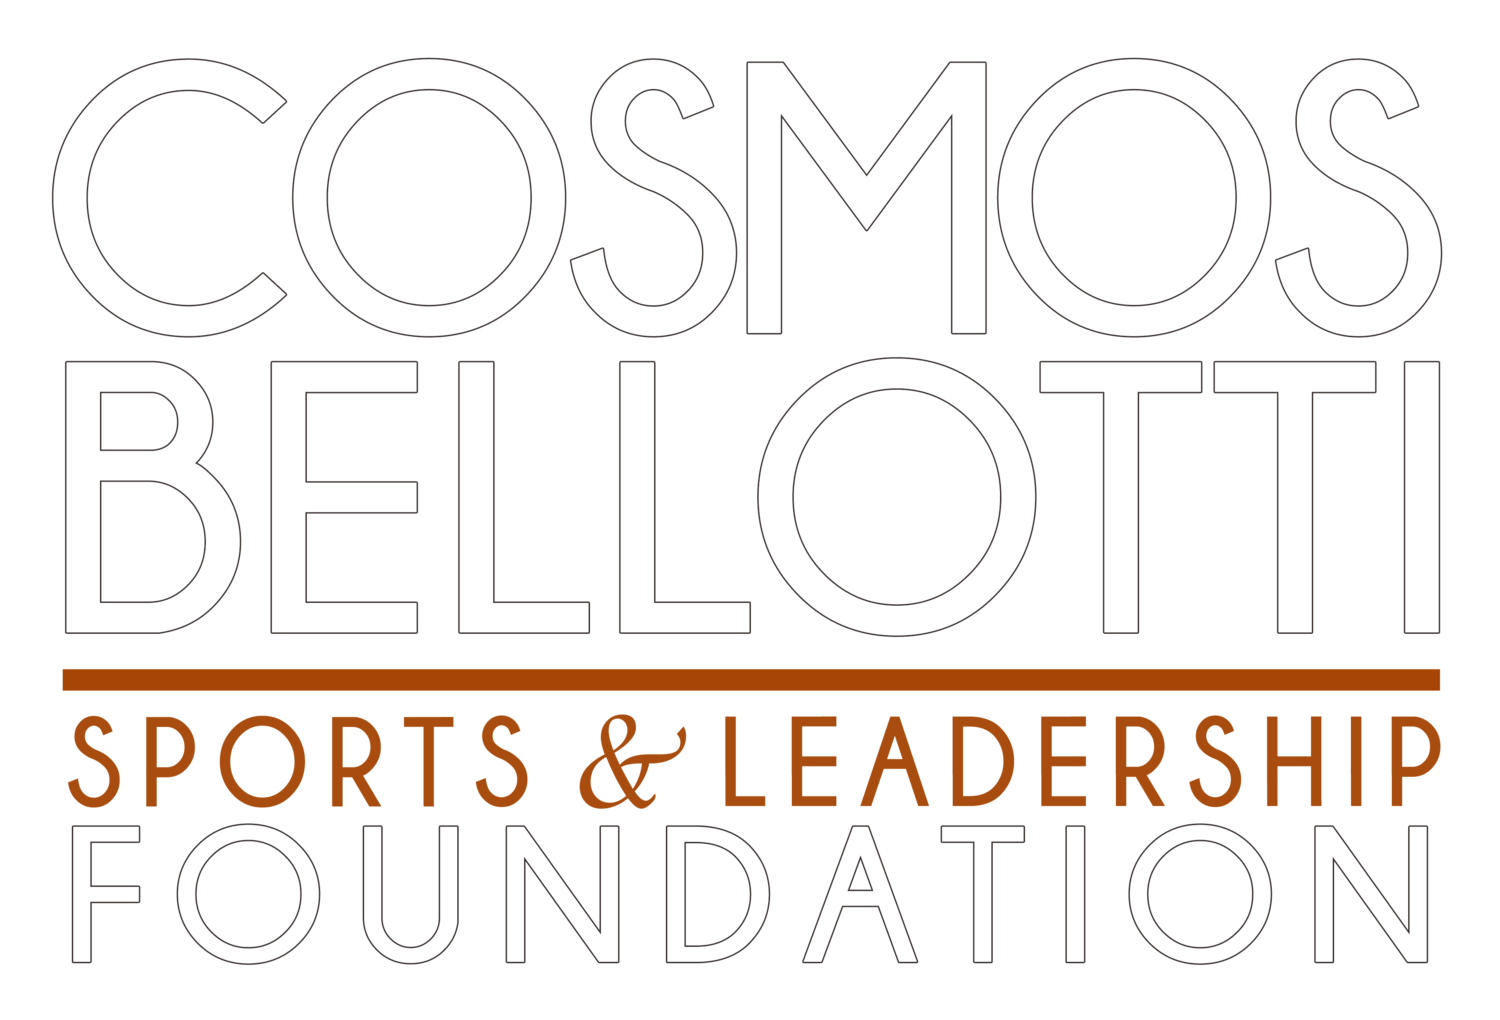 Cosmos Bellotti Sports & Leadership Foundation